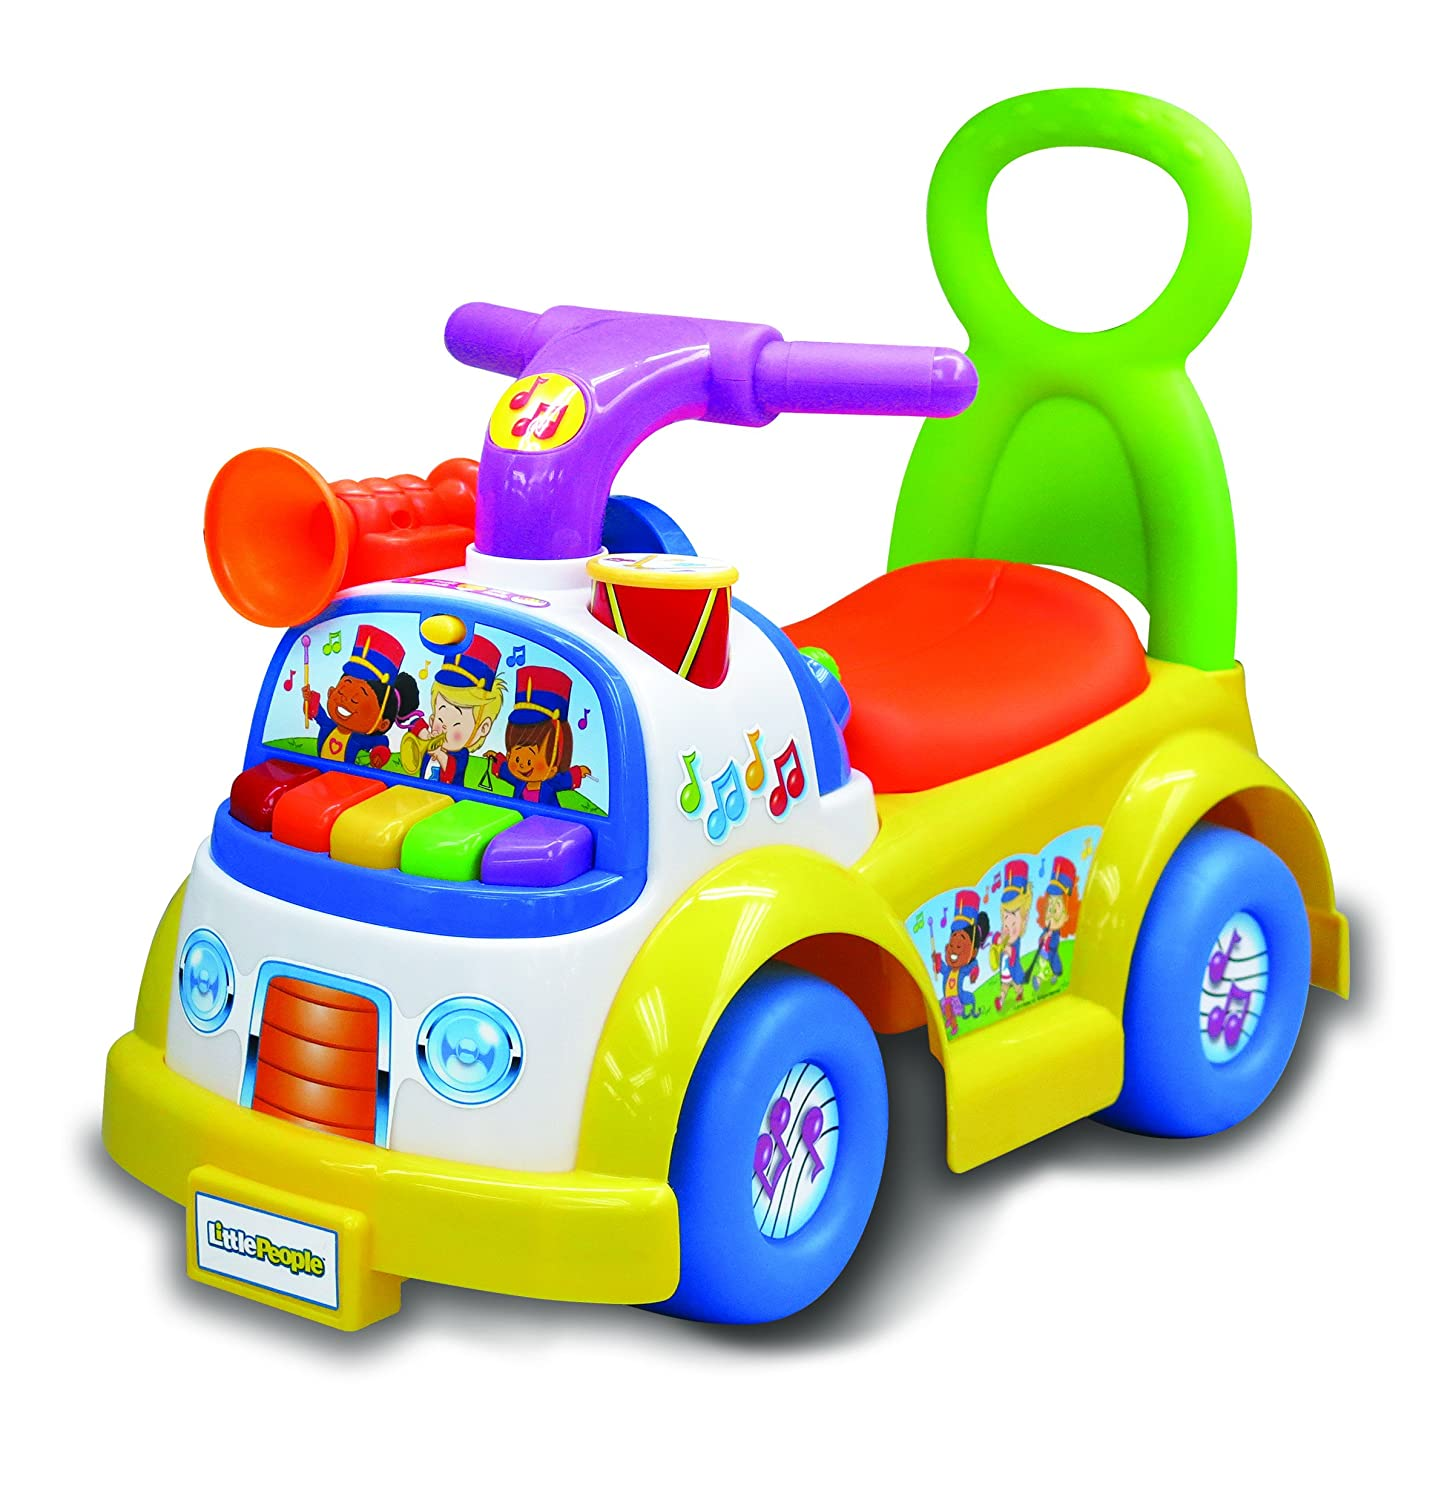 Top 9 Best Cars for 1 Year Olds You Can Consider 1